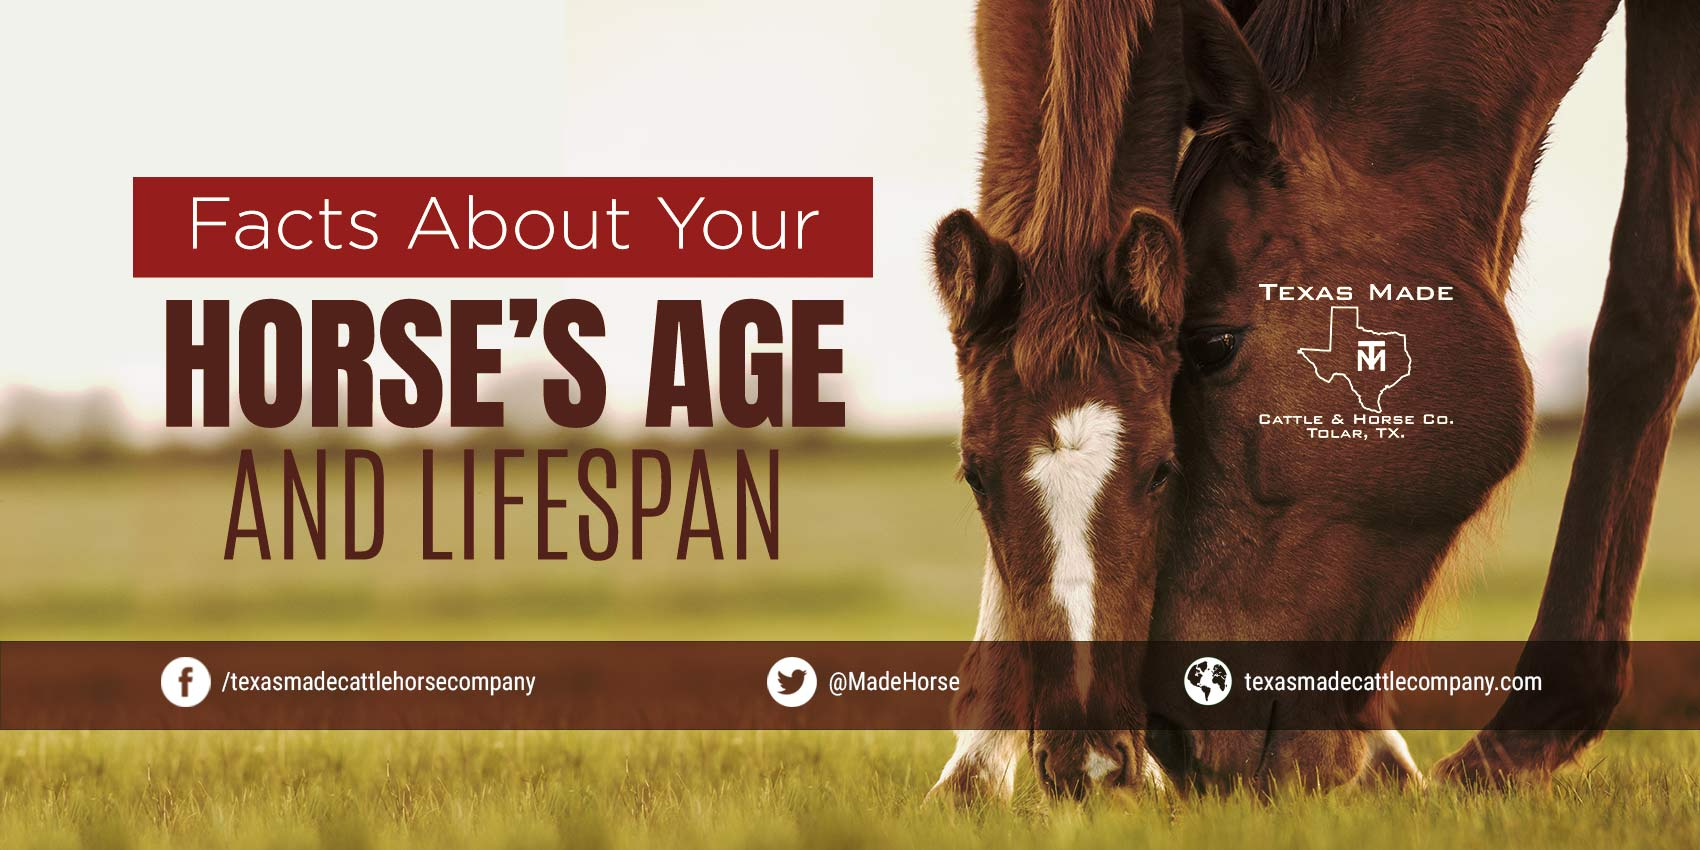 Facts About Your Horse's Age and Lifespan